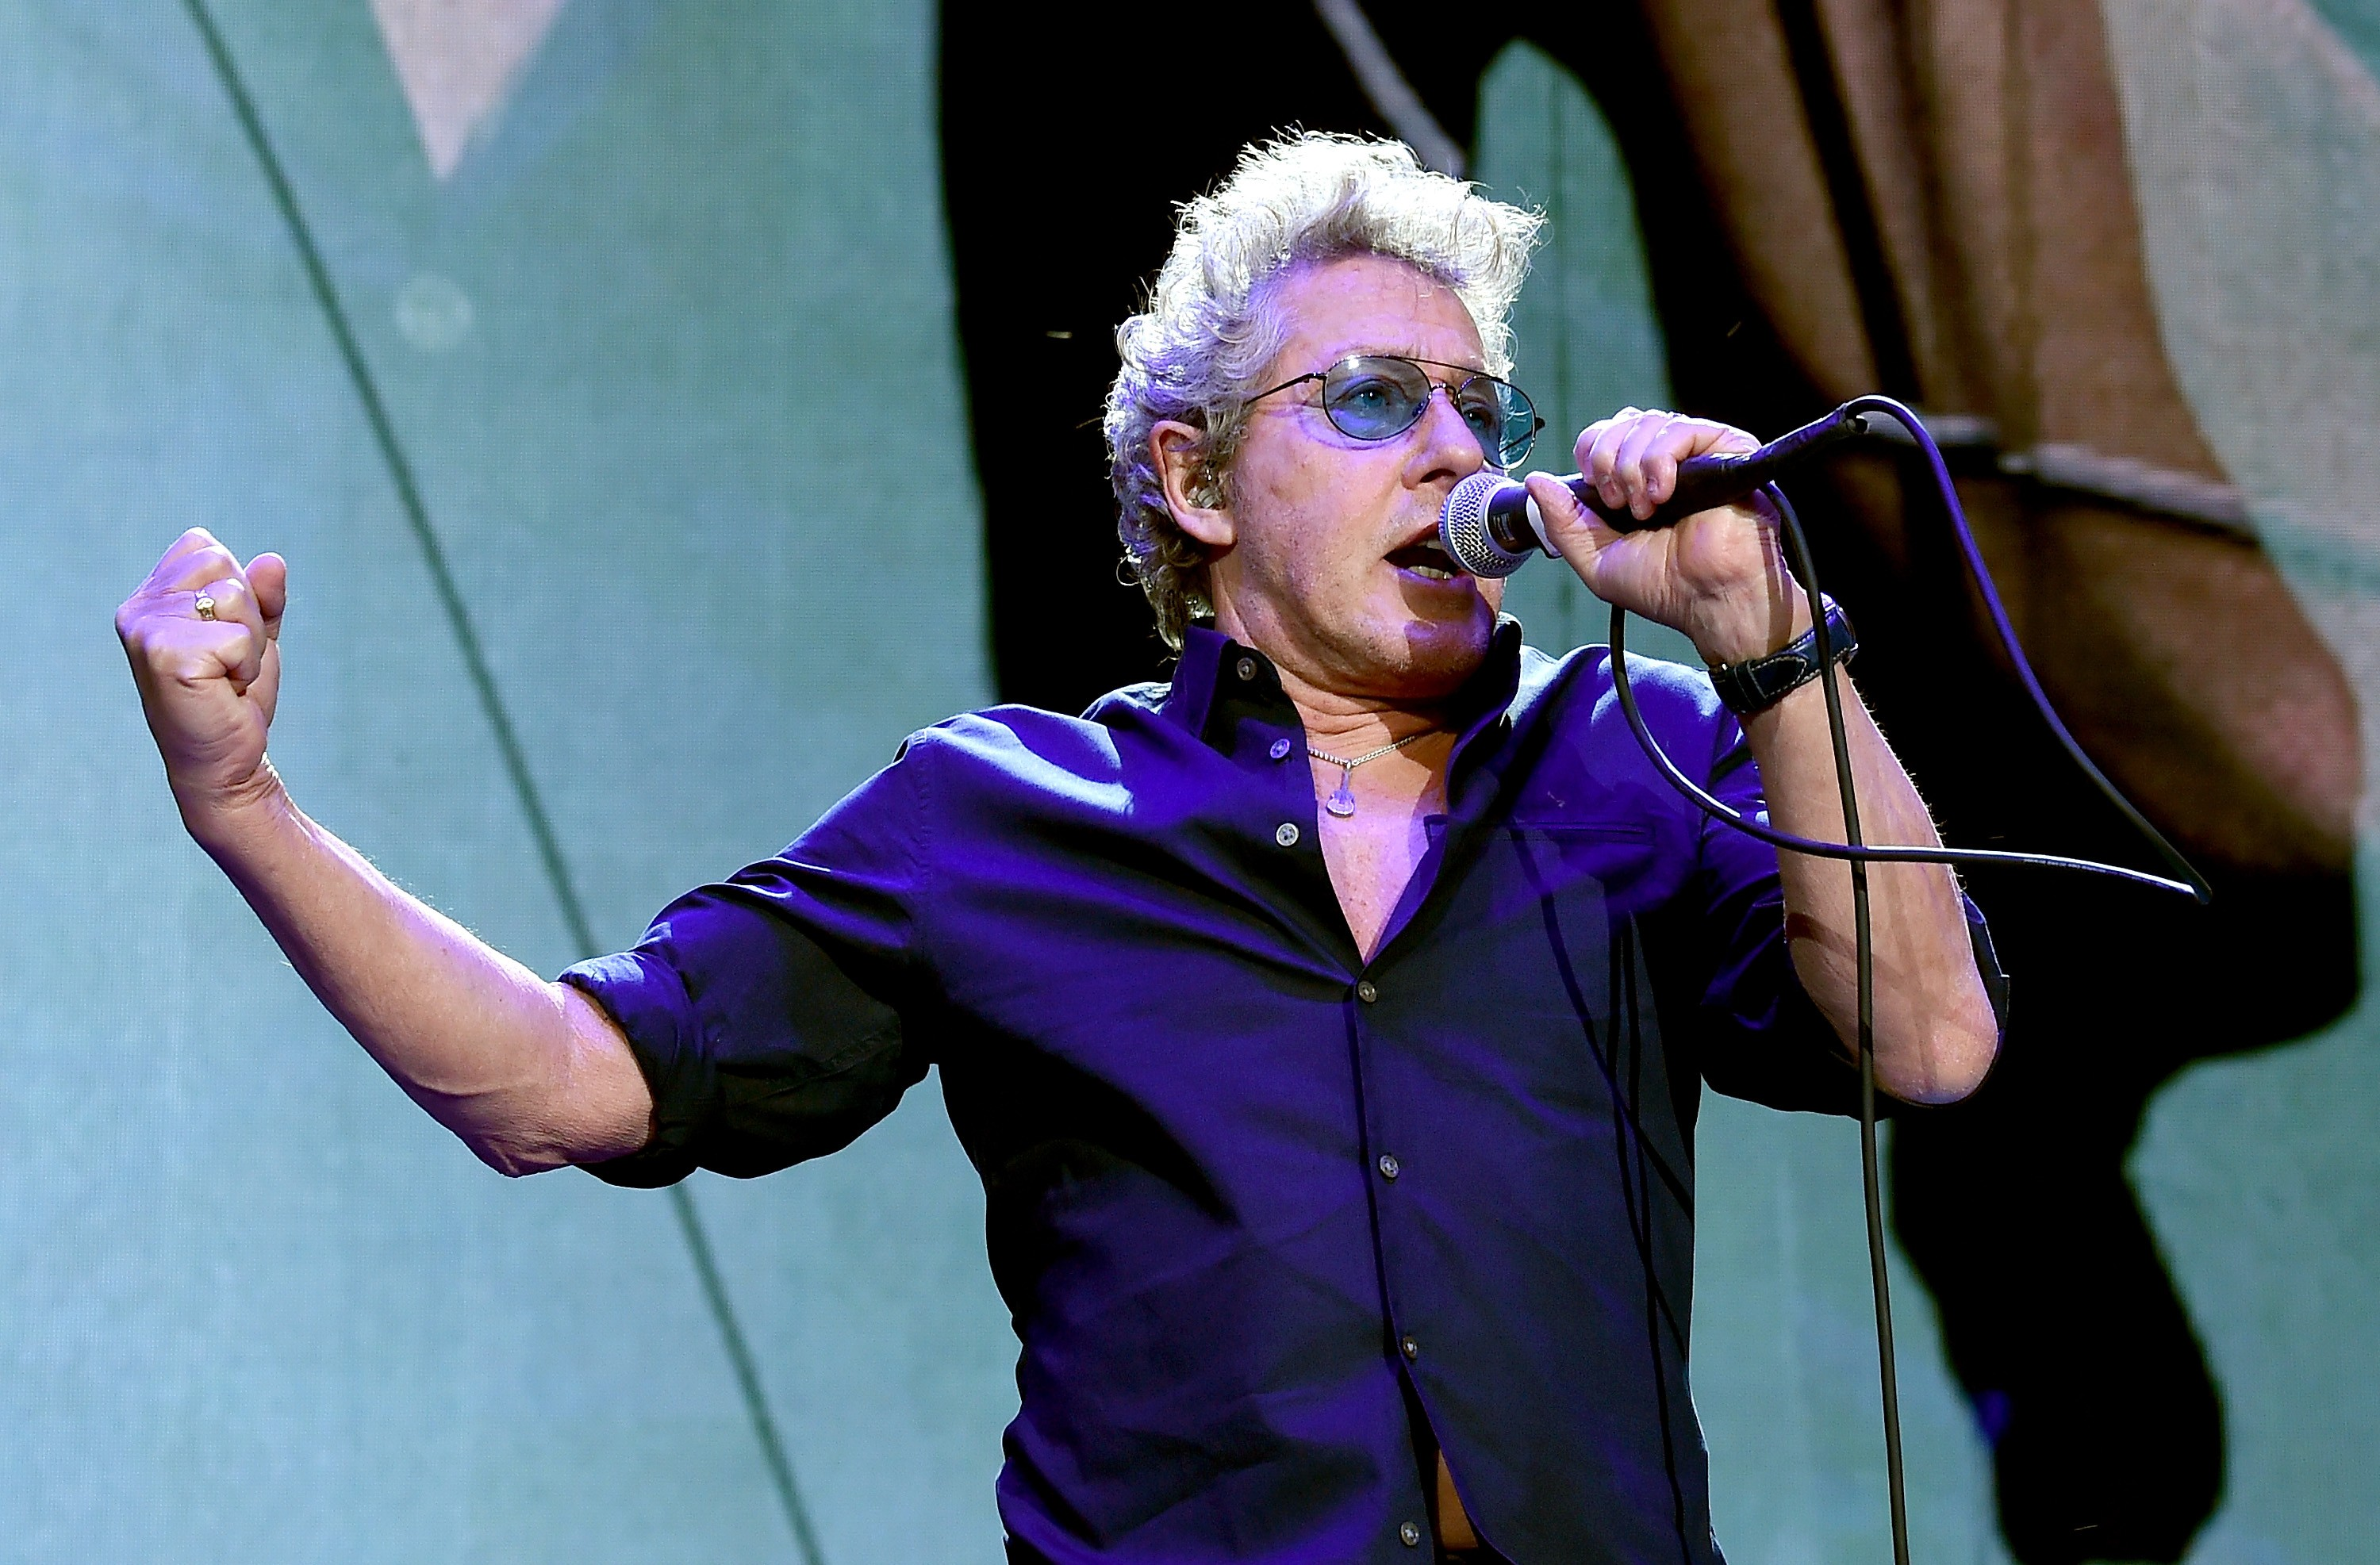 Roger Daltrey, vocalista do The Who, durante show na Califórnia em 2016 (Foto: Getty Images/ Kevin Winter )